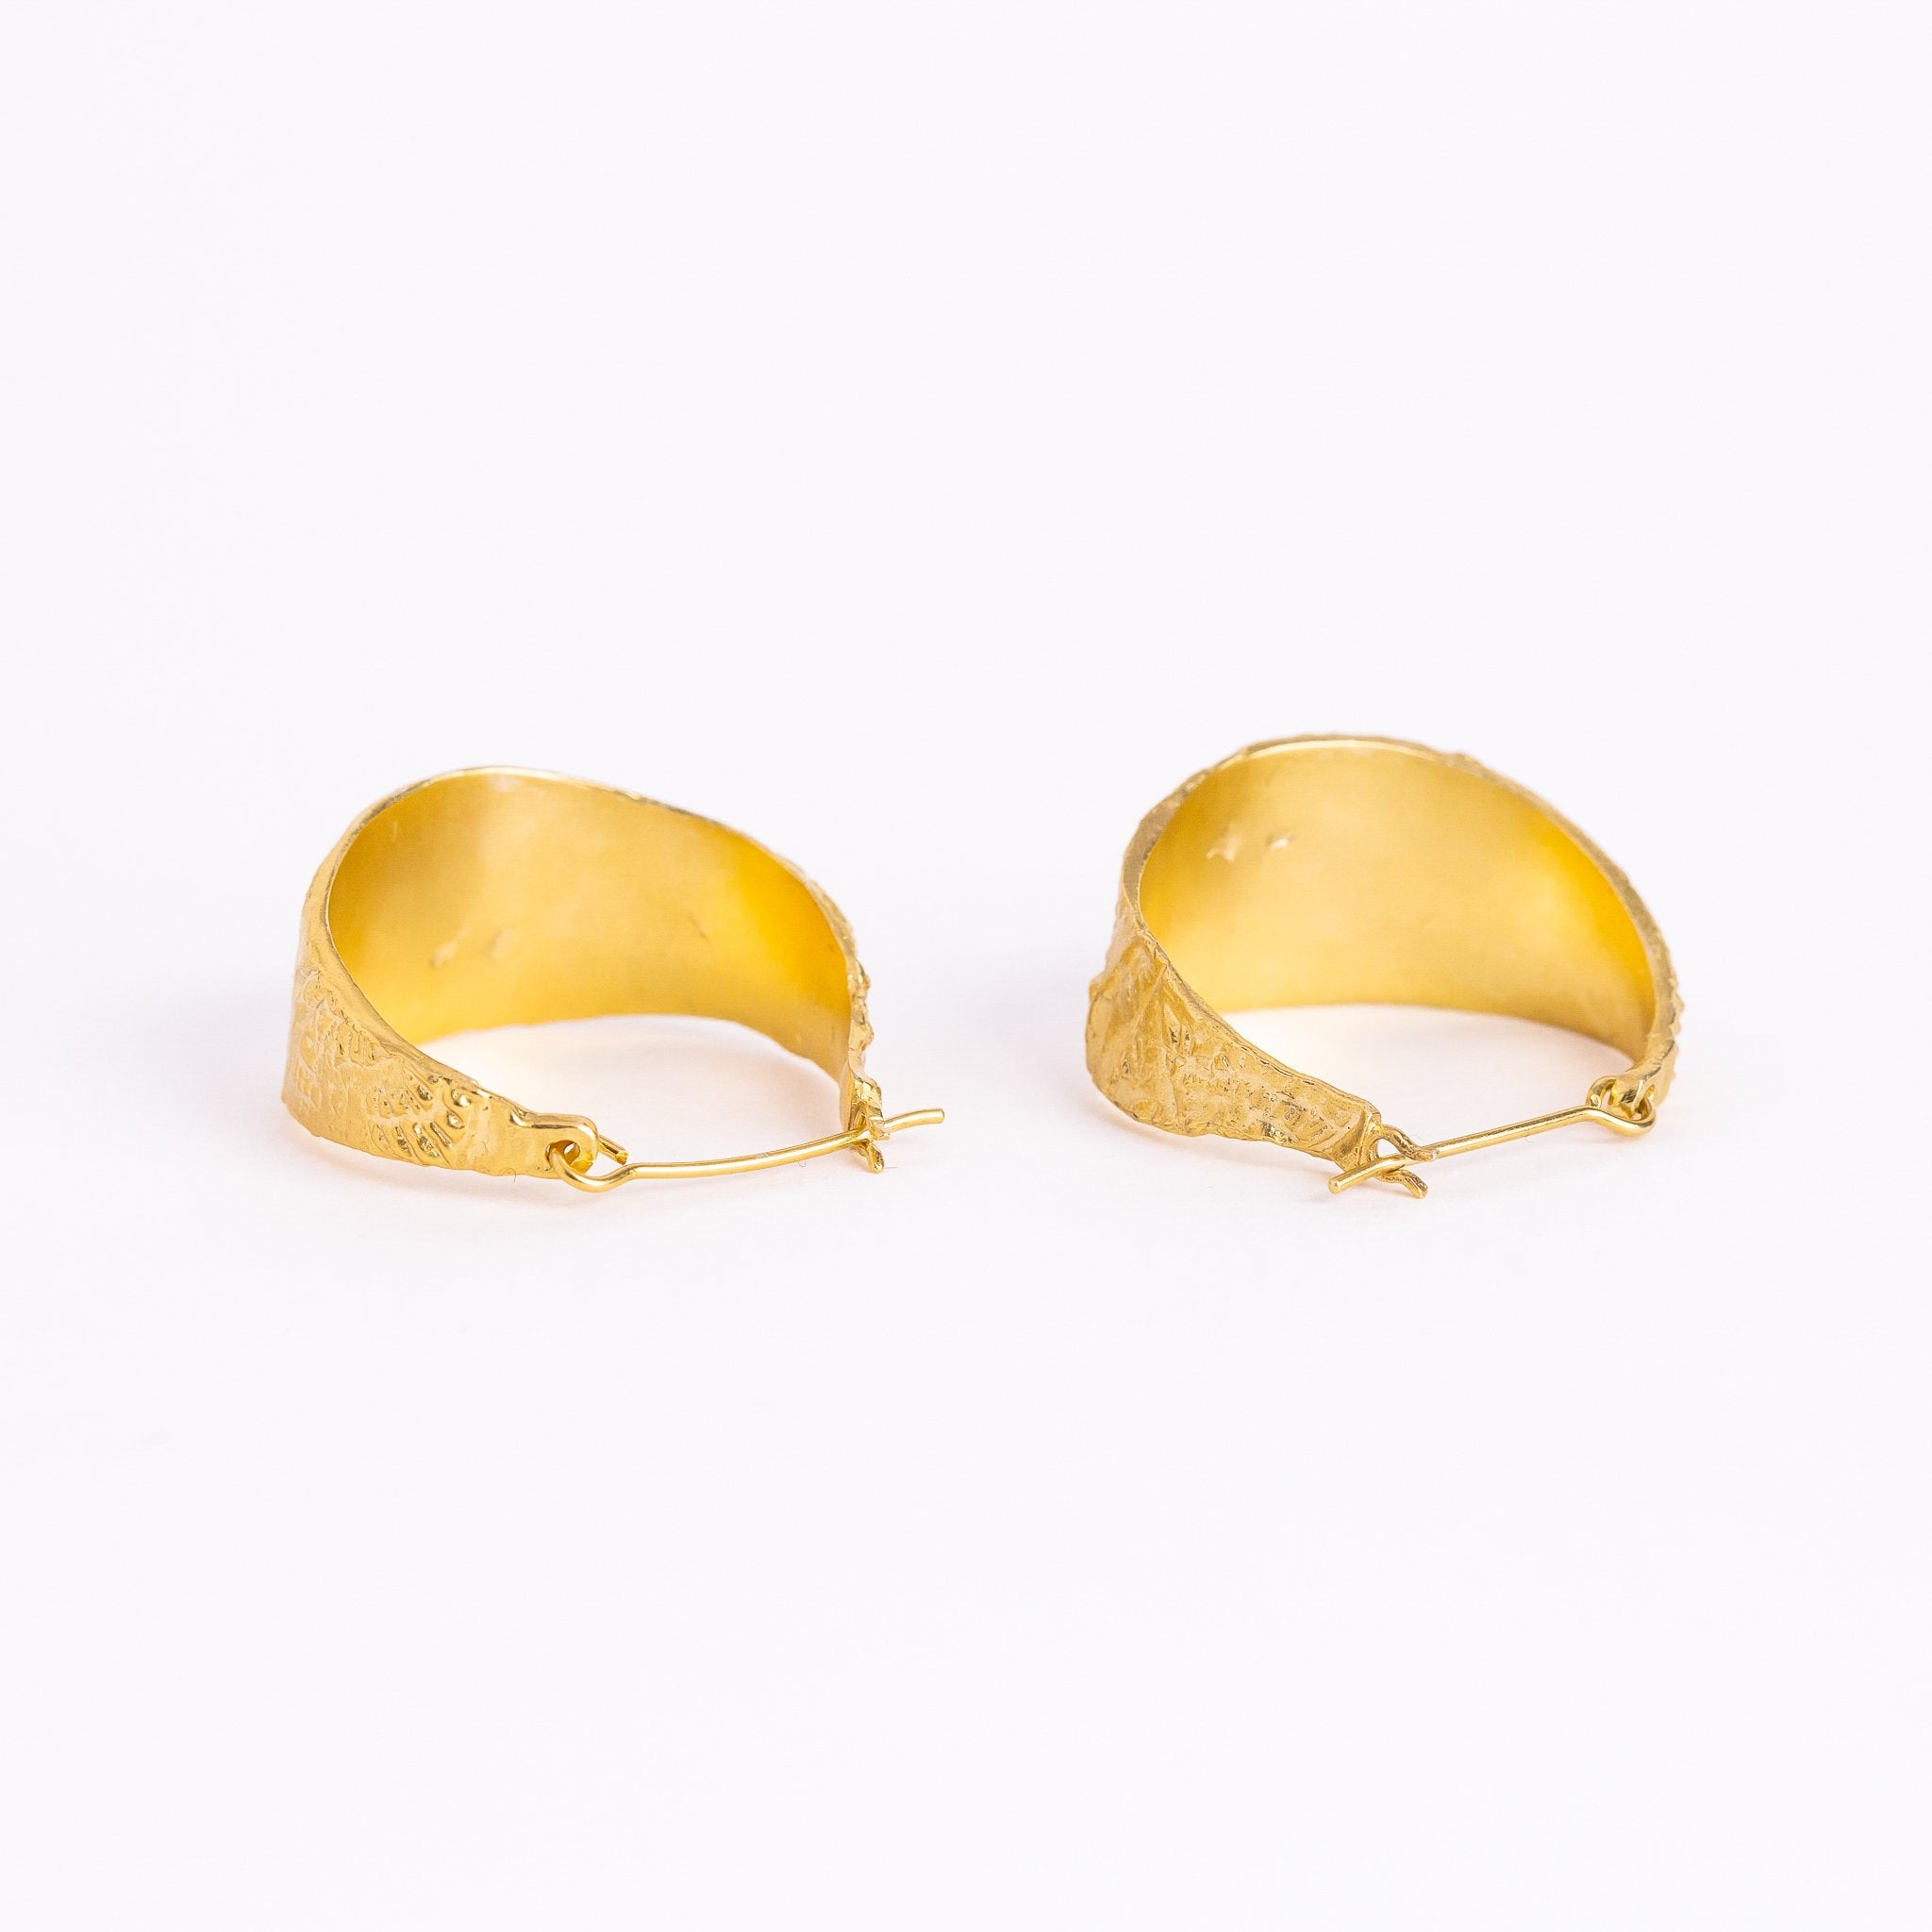 Handmade Textured Hoop Earrings in 18ct Gold Plate, Hand Made Jewellery, Made in Melbourne